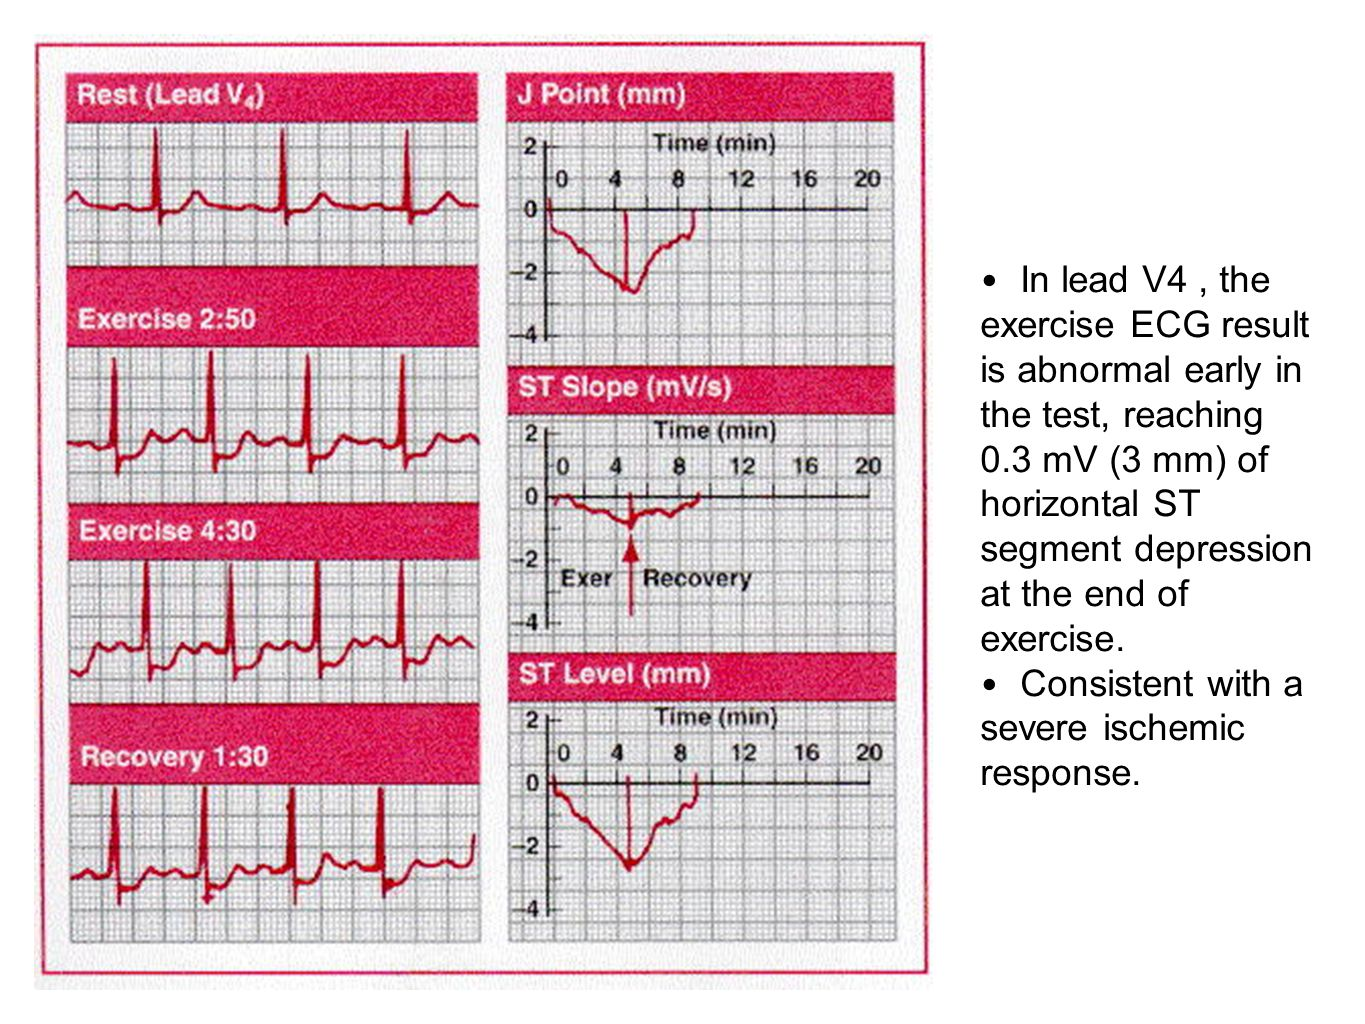 In lead V4 , the exercise ECG result is abnormal early in the test, reaching 0.3 mV (3 mm) of horizontal ST segment depression at the end of exercise.